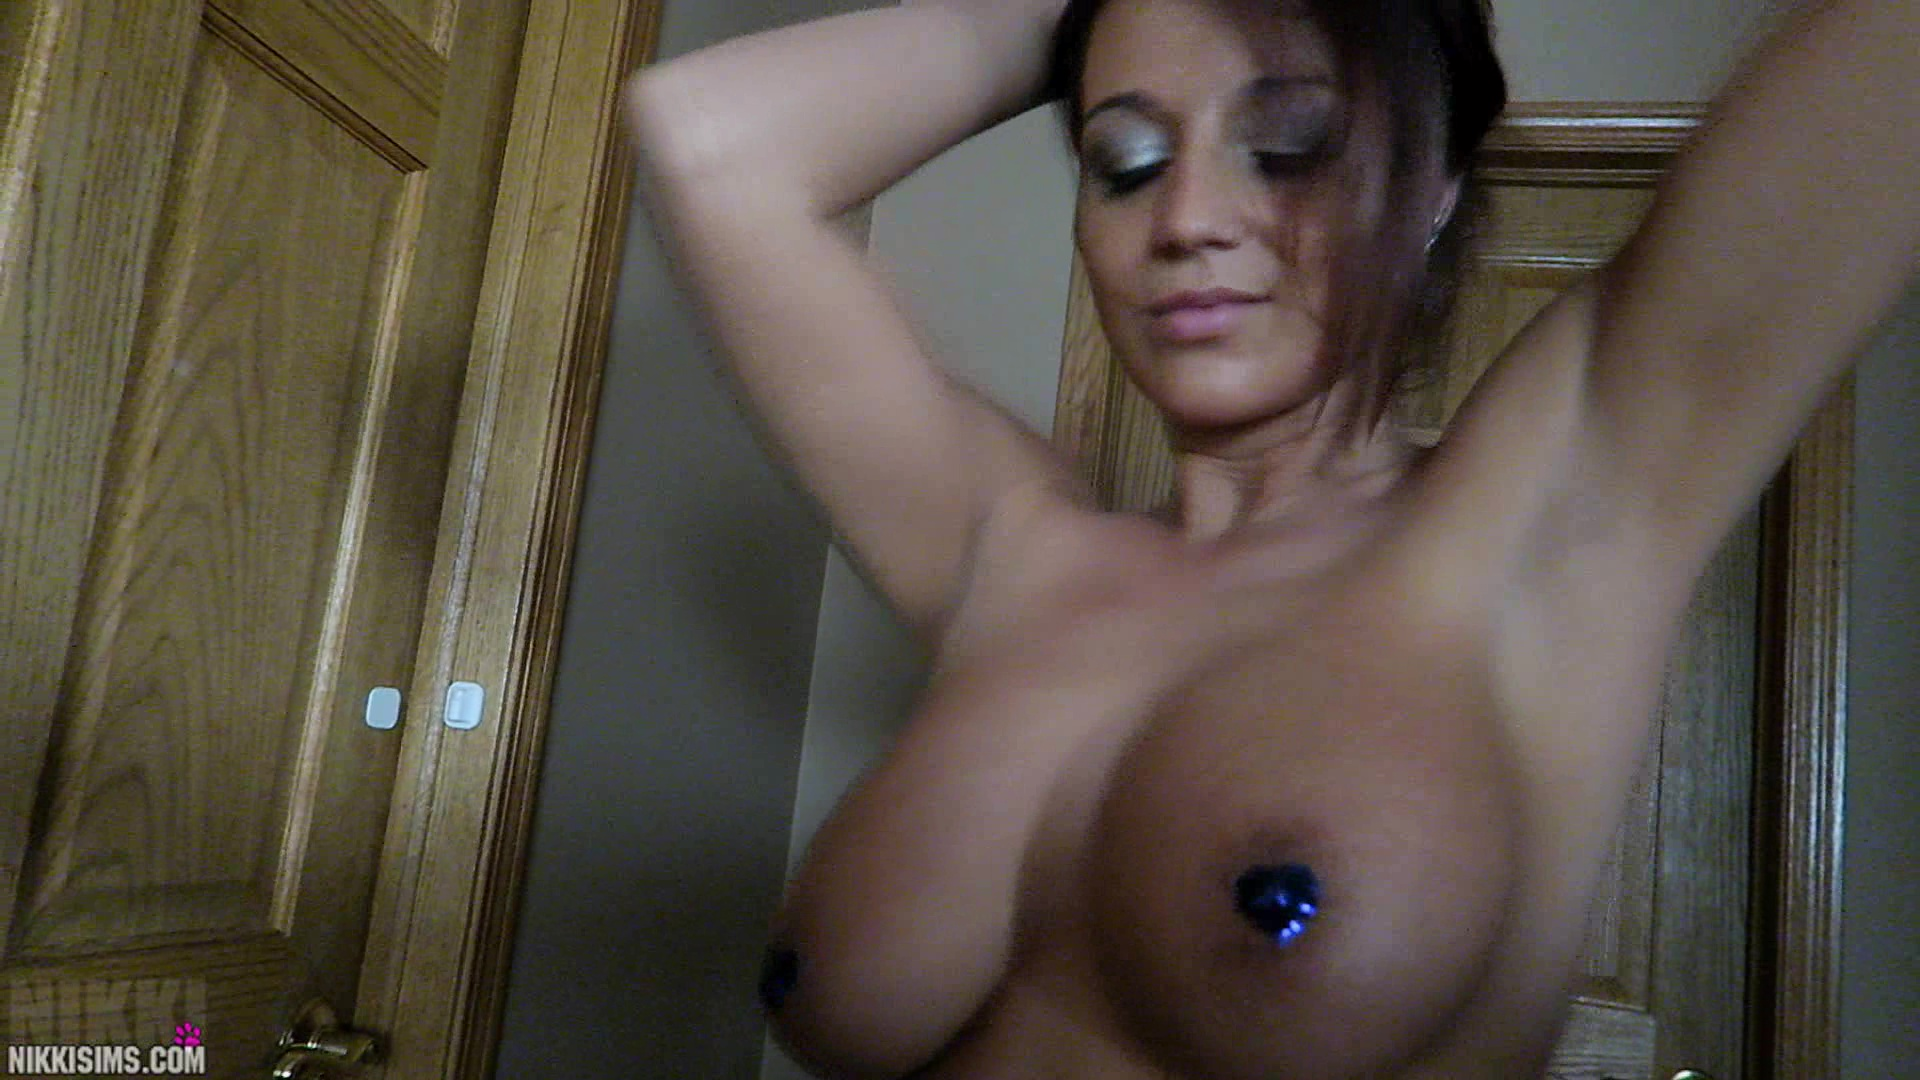 Nikki sims nude shower